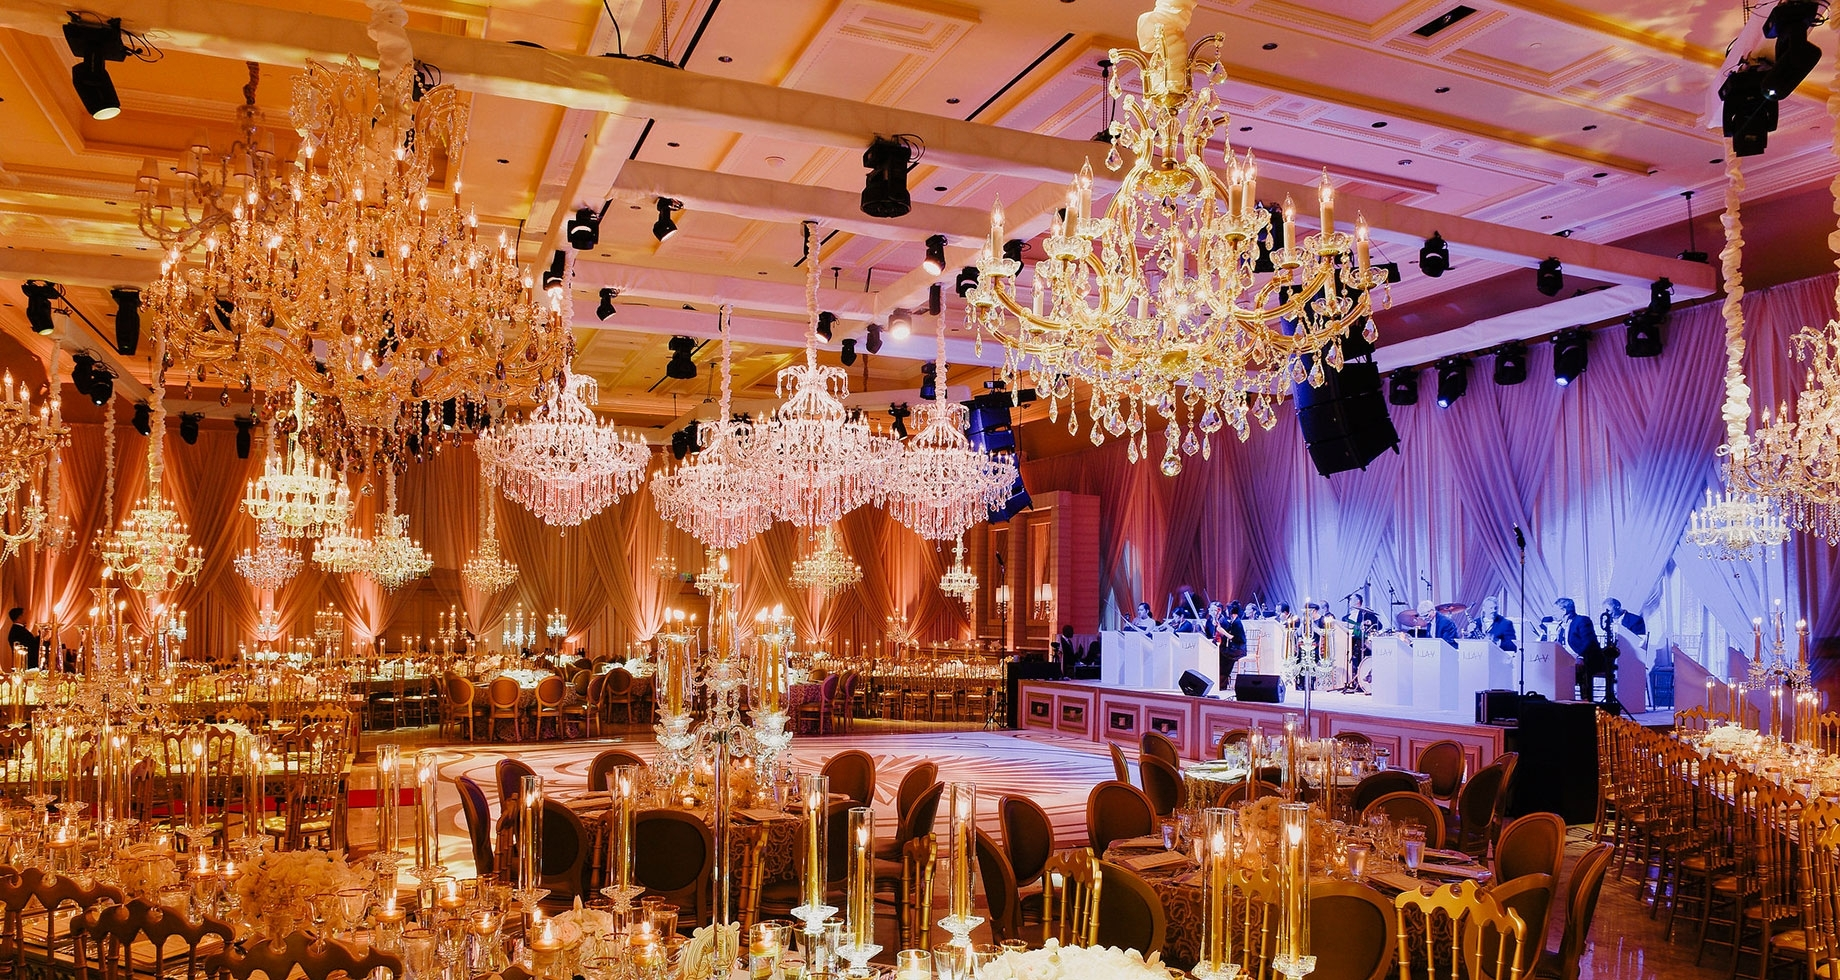 Rentals For Wedding & Events With Regard To Well Liked Ballroom Chandeliers (View 15 of 20)